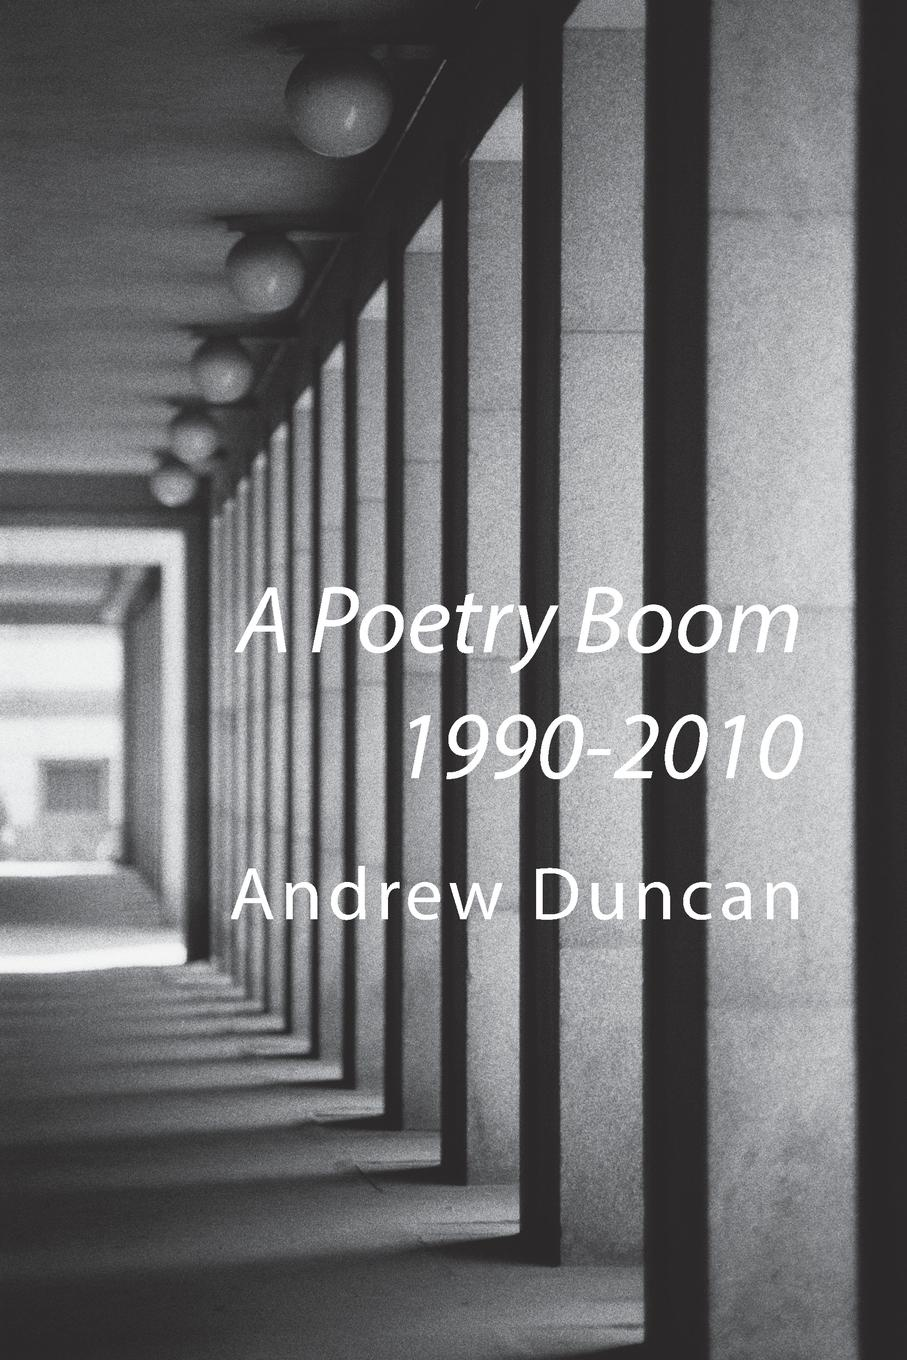 Andrew Duncan A Poetry Boom 1990-2010